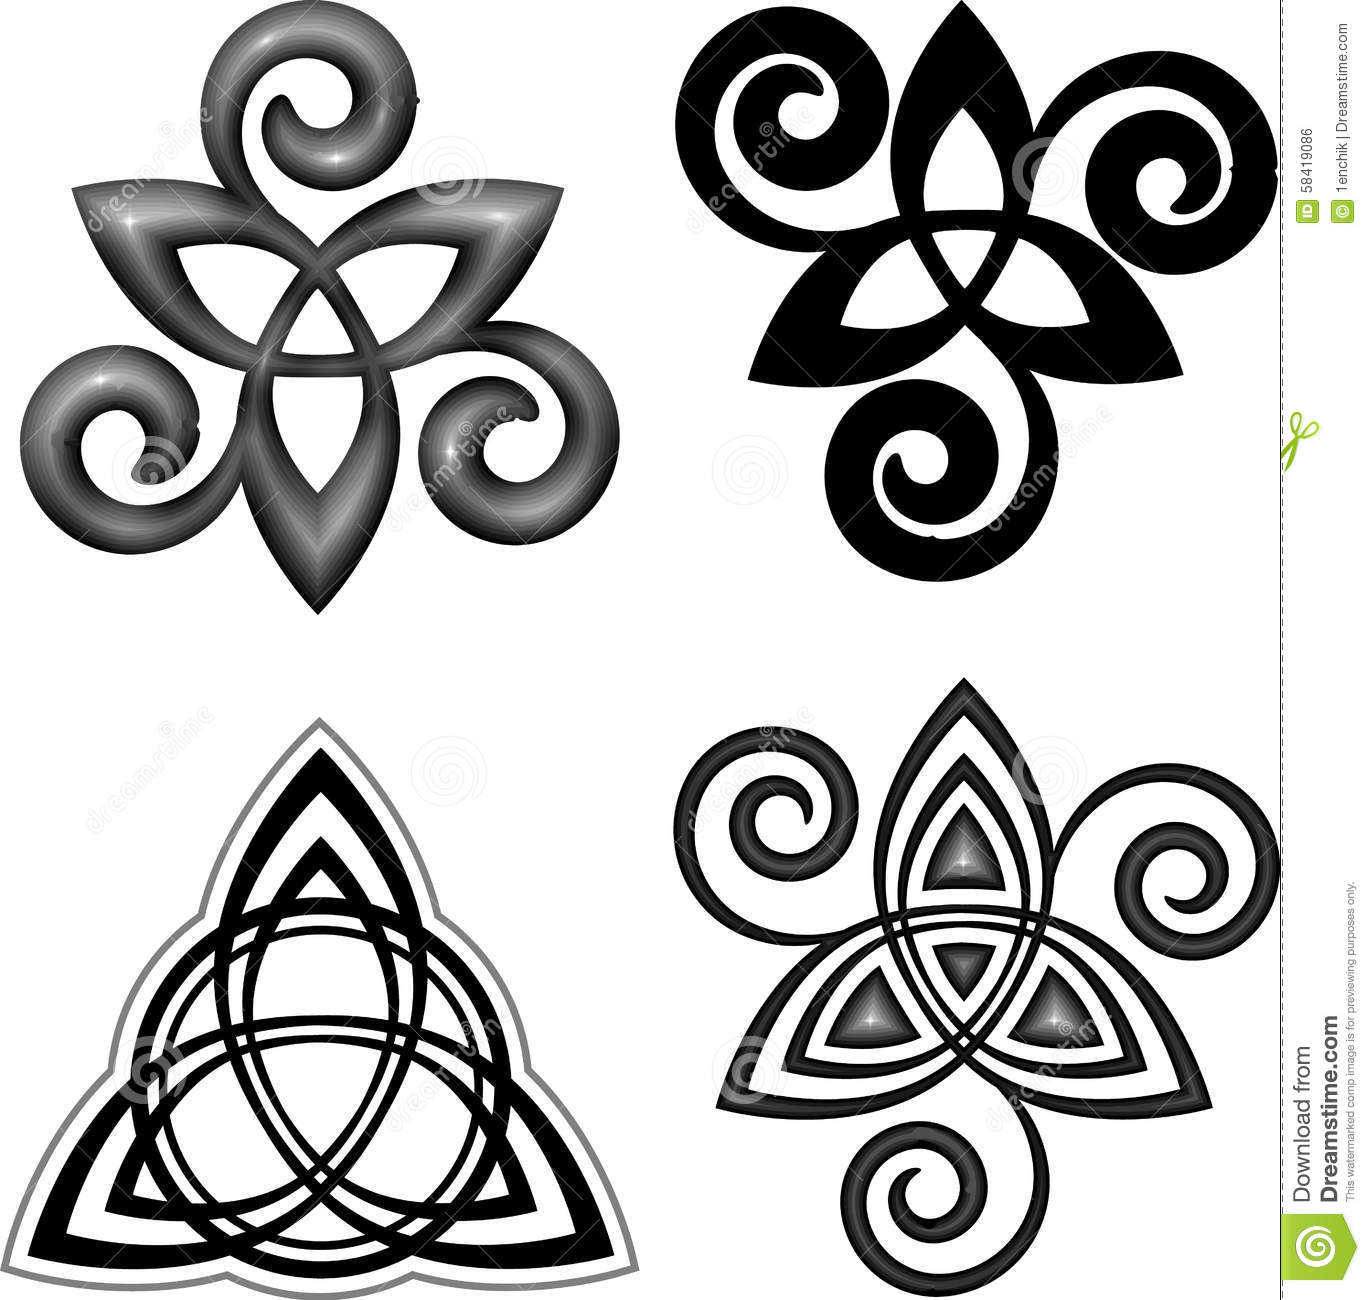 85+ Celtic Cross Tattoo Designs&Meanings - Tattoo-Journal